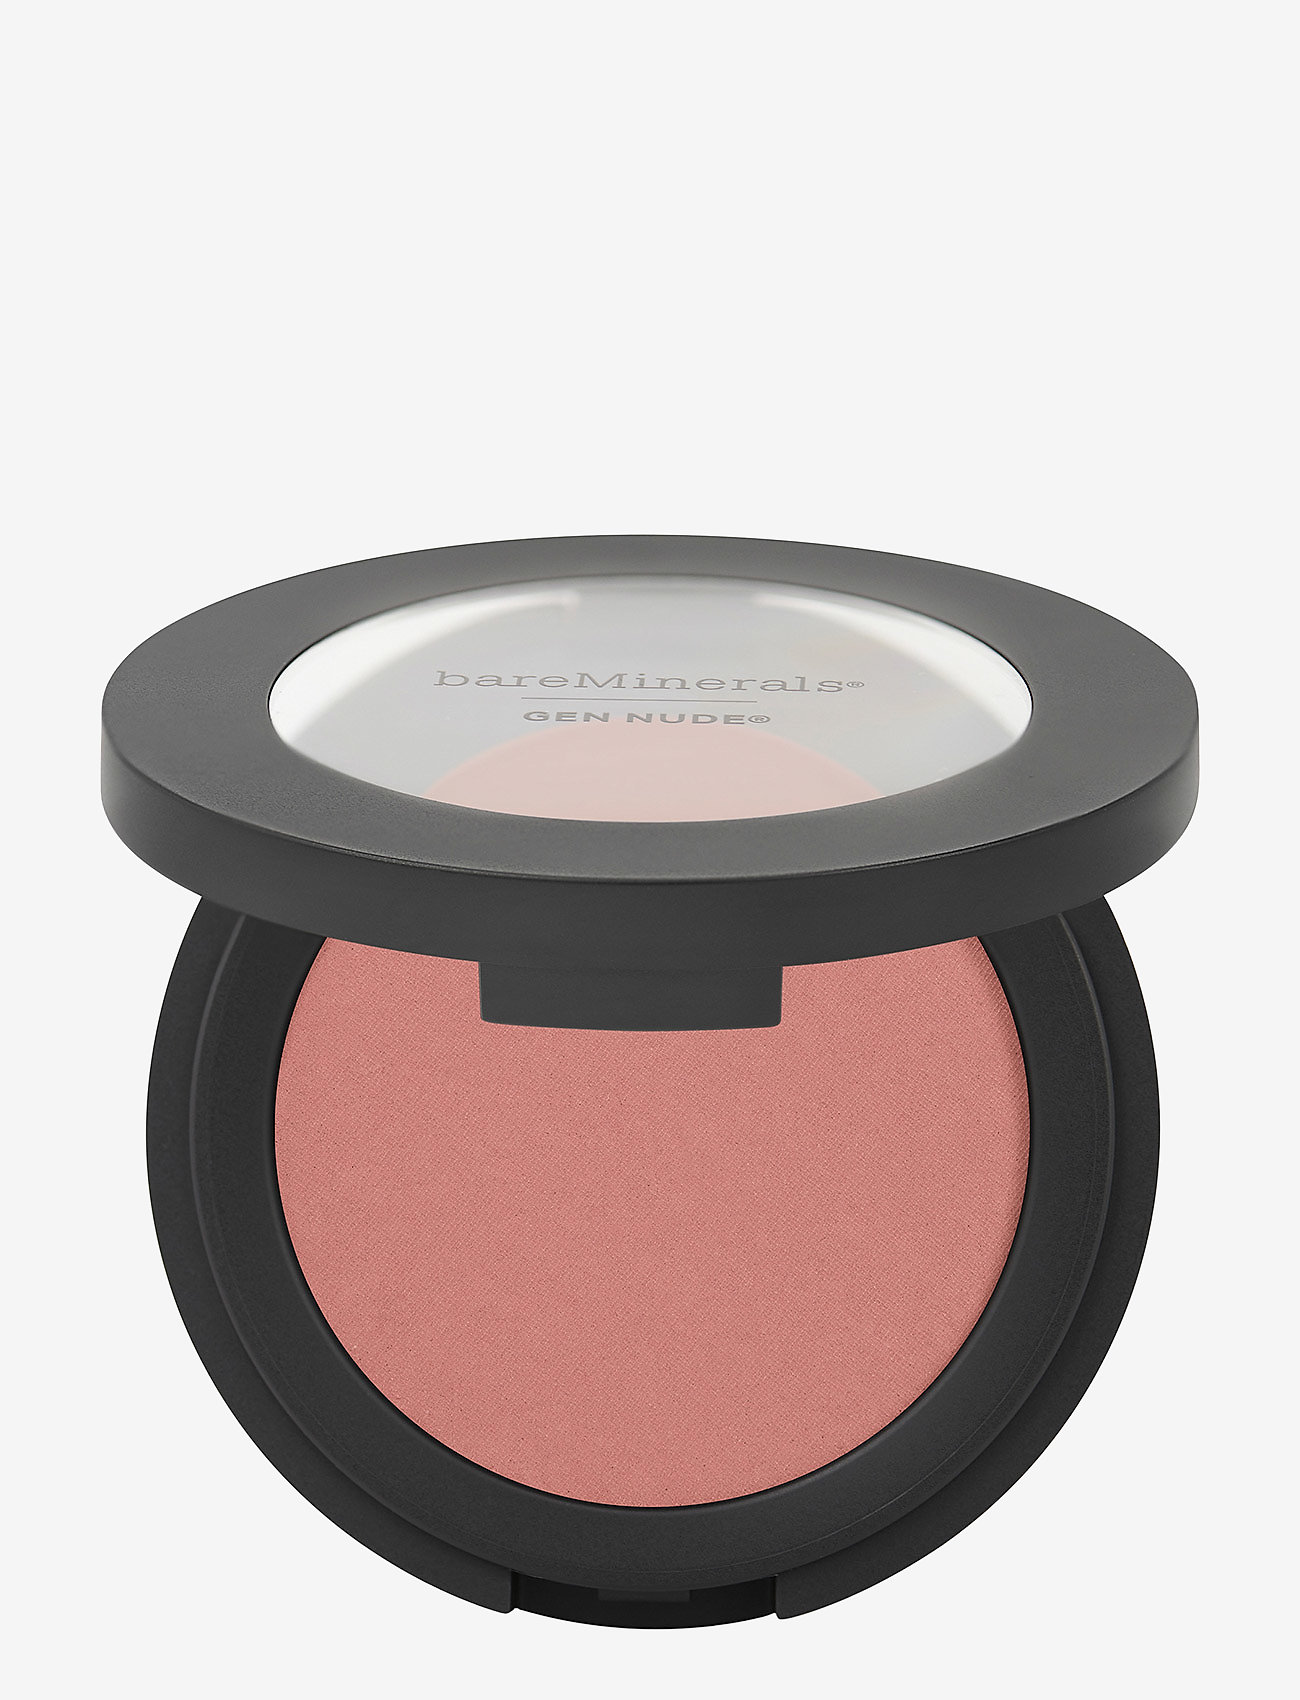 bareMinerals Gen Nude Powder Blushes - Makeup-Sessions